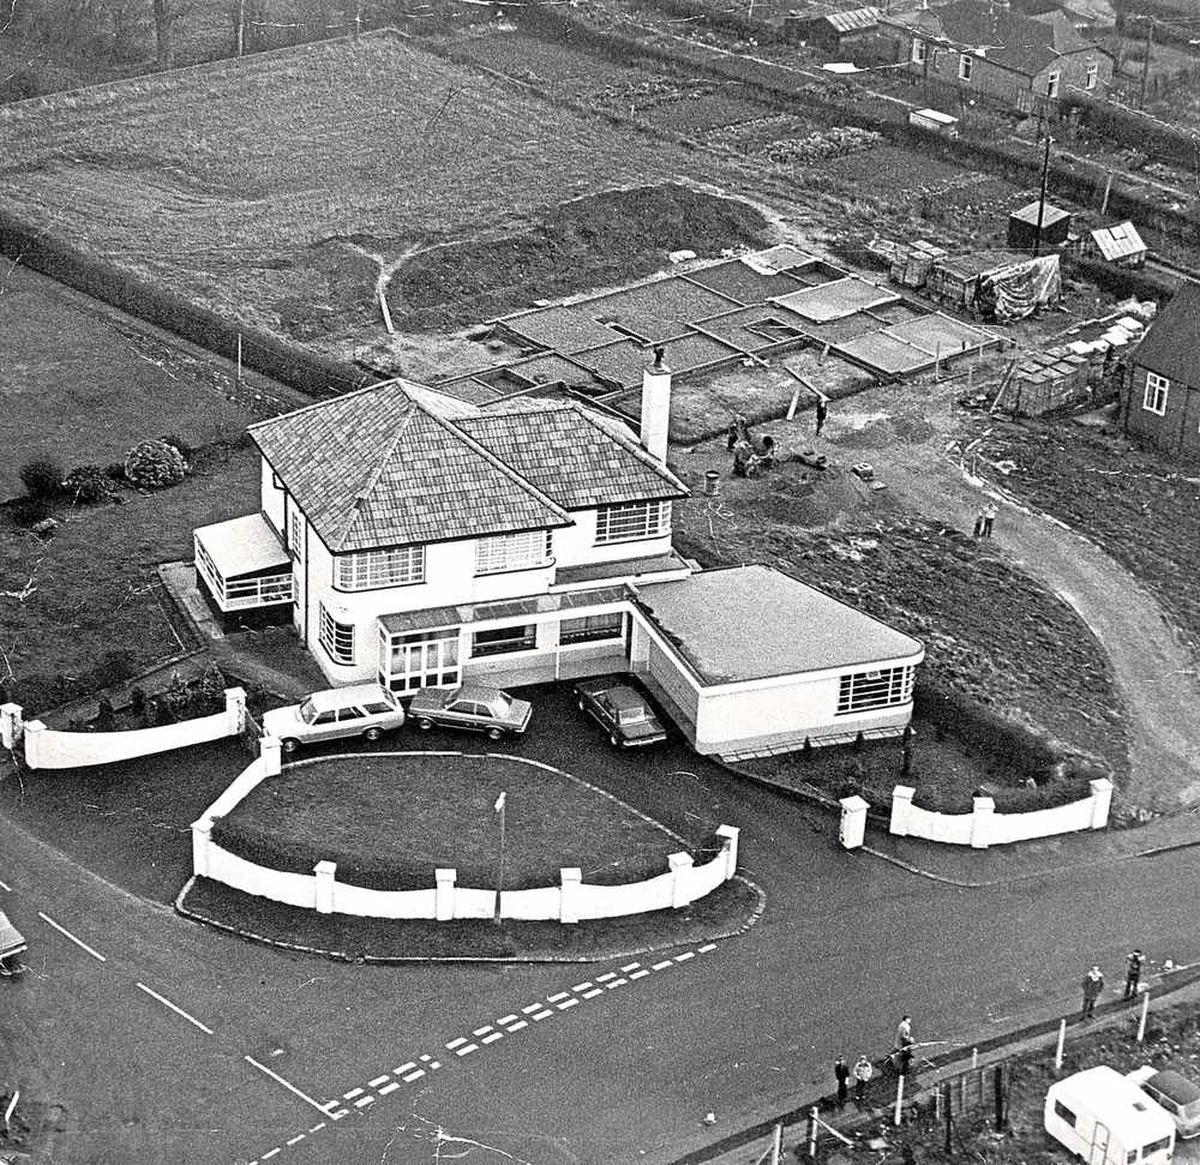 Beechcroft, the home from which Lesley Whittle disappeared